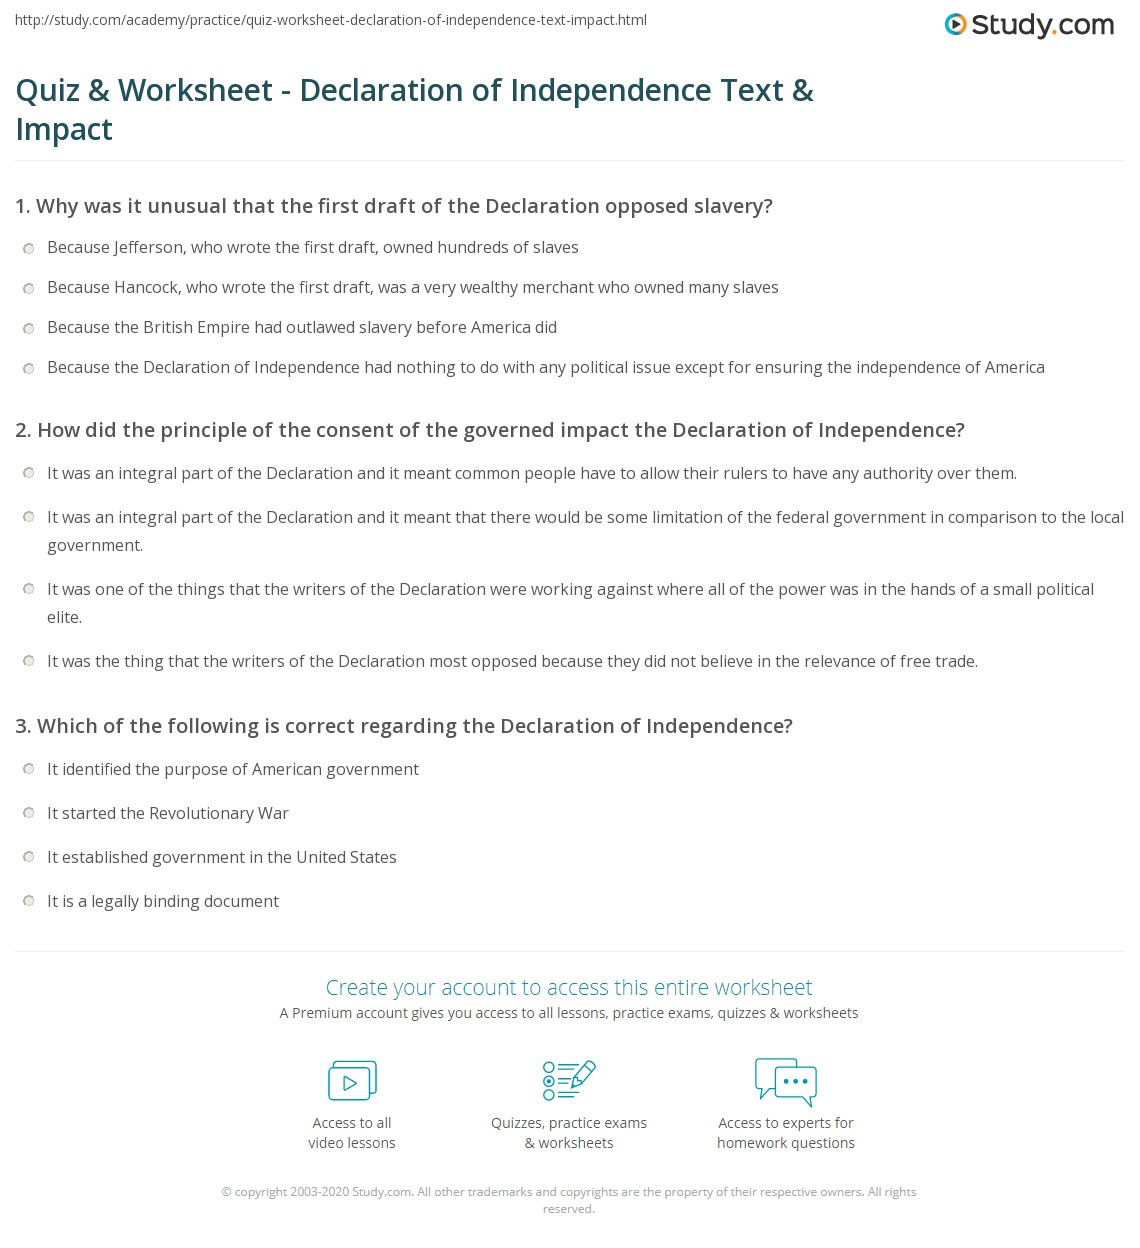 Quiz & Worksheet - Declaration of Independence Text & Impact ...